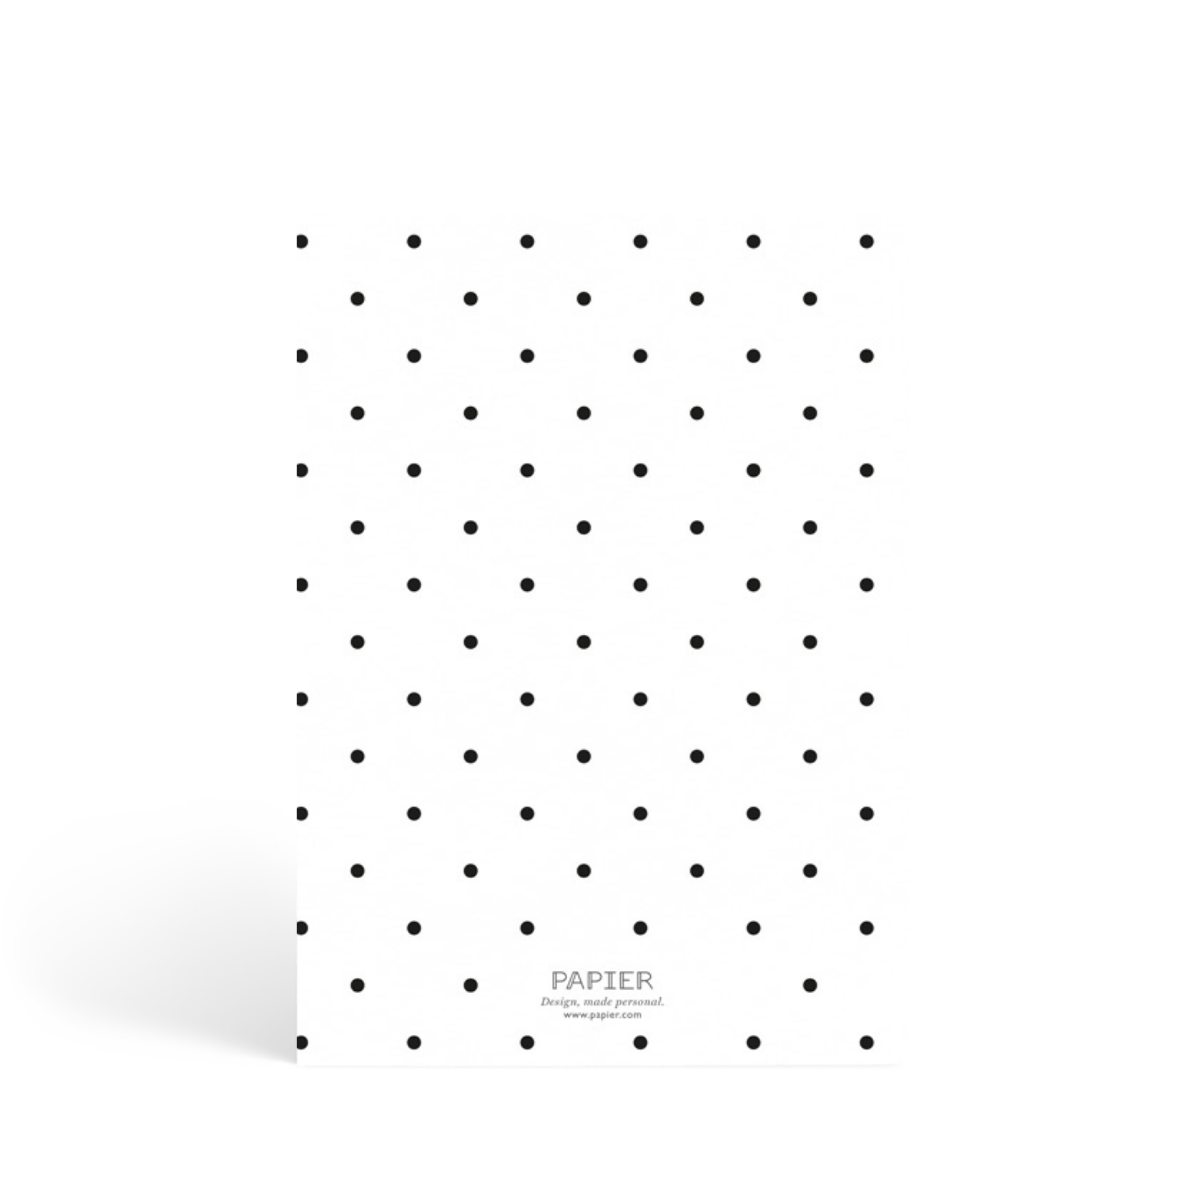 Https%3a%2f%2fwww.papier.com%2fproduct image%2f64853%2f5%2fpolka dots 15258 rueckseite 1549051467.png?ixlib=rb 1.1